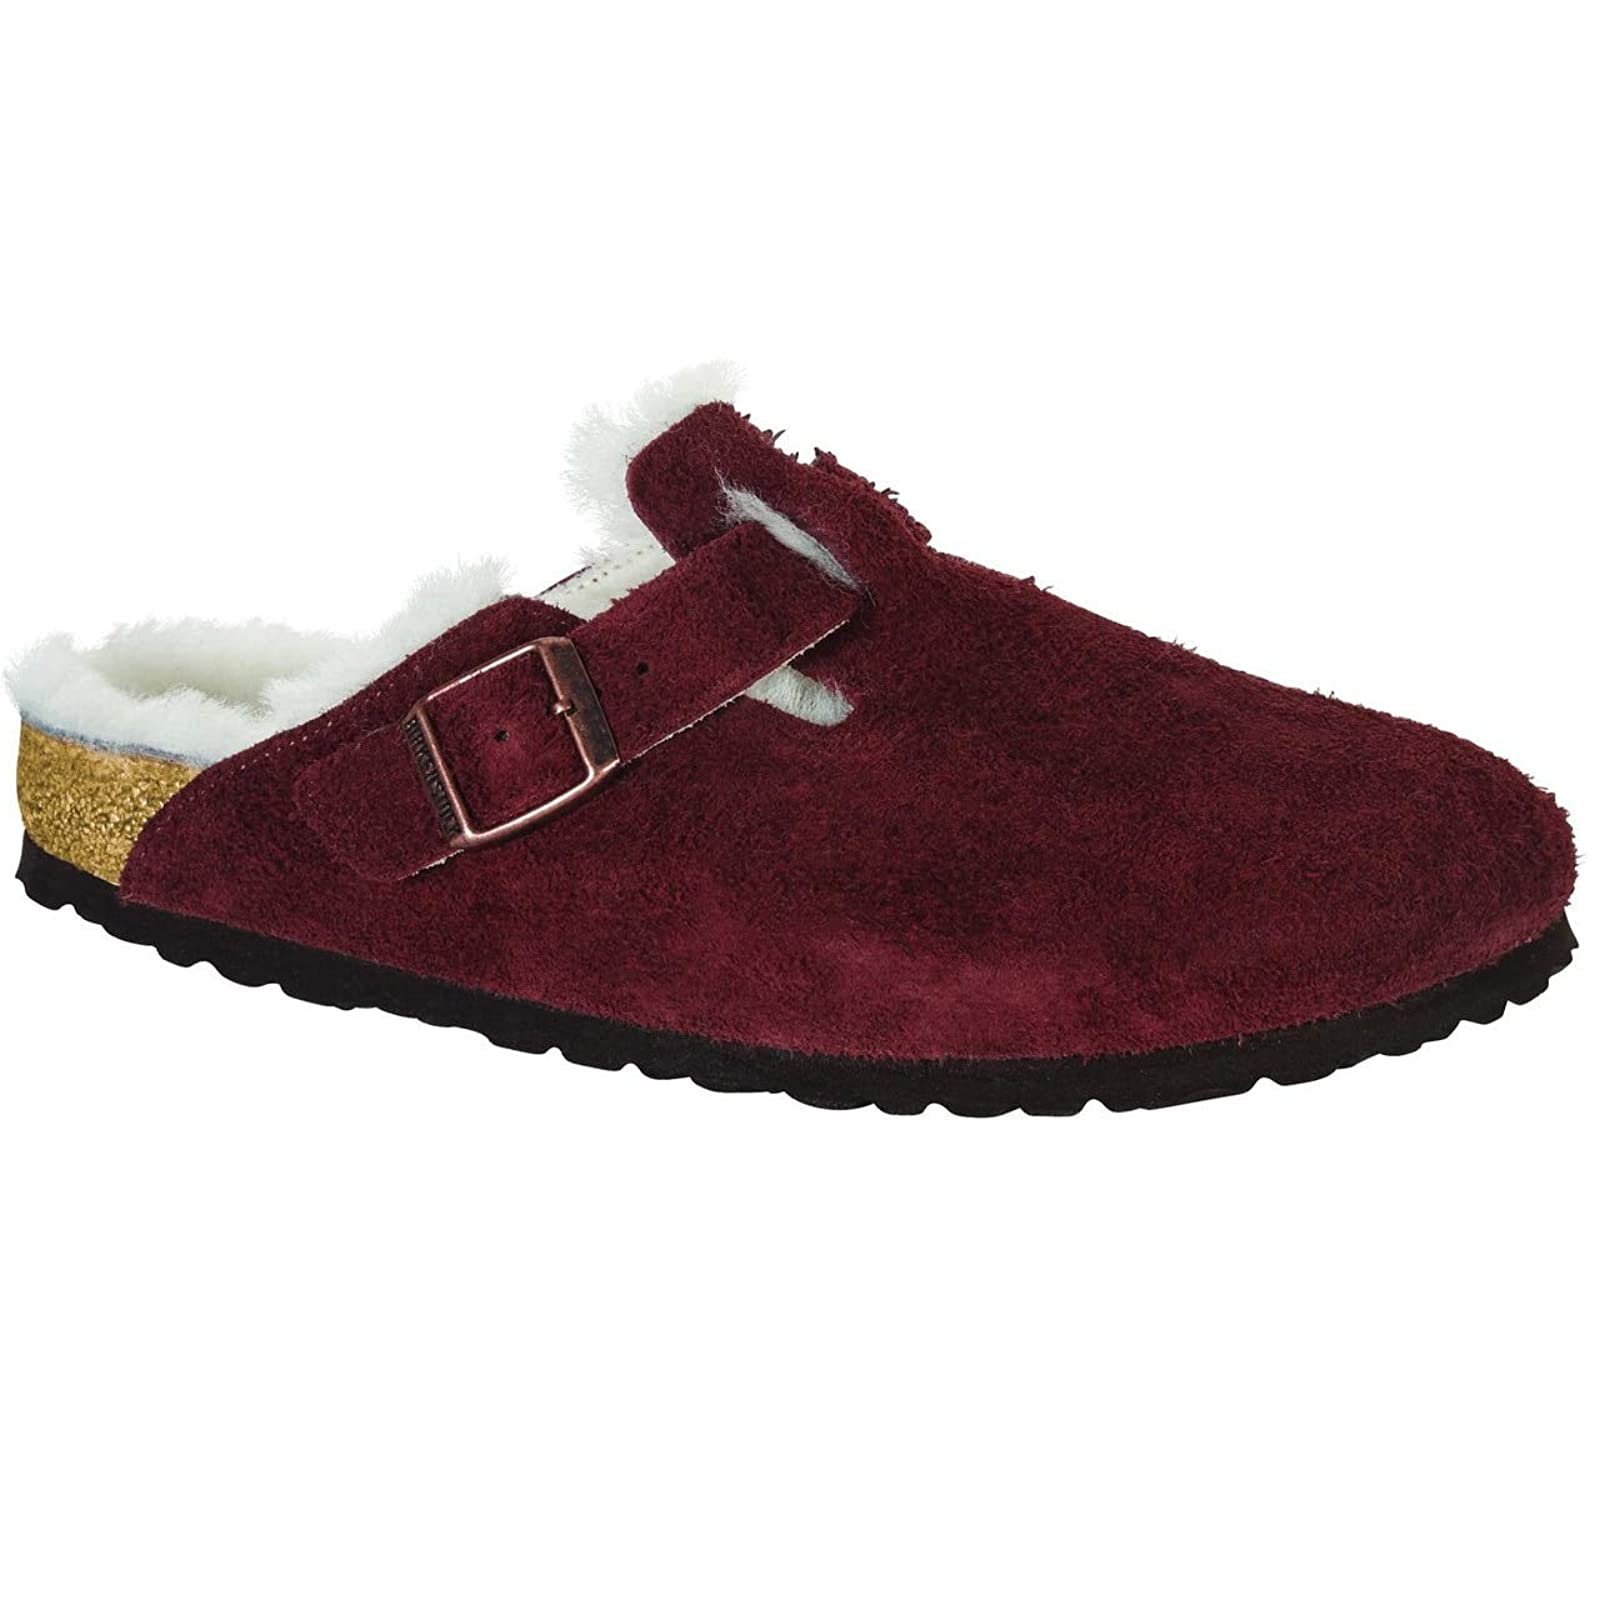 Birkenstock Boston Port Natural Shearling Suede Clogs - 1